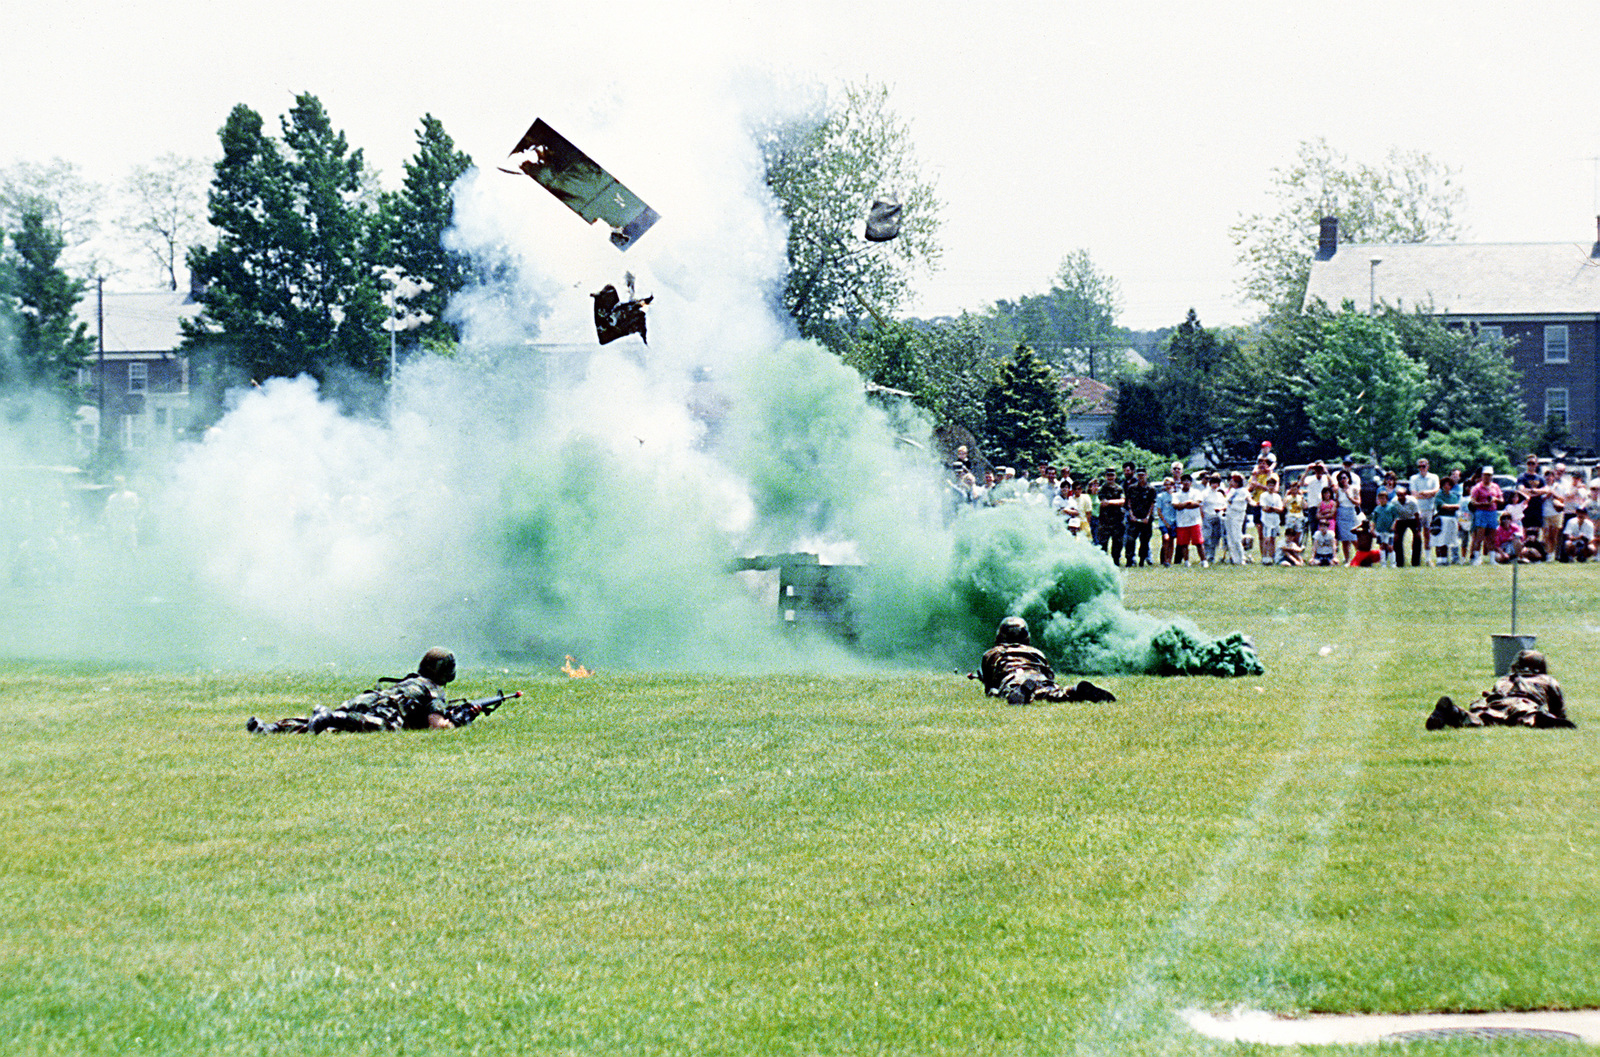 Guardsmen of the 2nd Battalion, 114th Infantry Division, New Jersey National Guard, put on a fire and maneuver demonstration for spectators attending the base's Armed Force Day activities